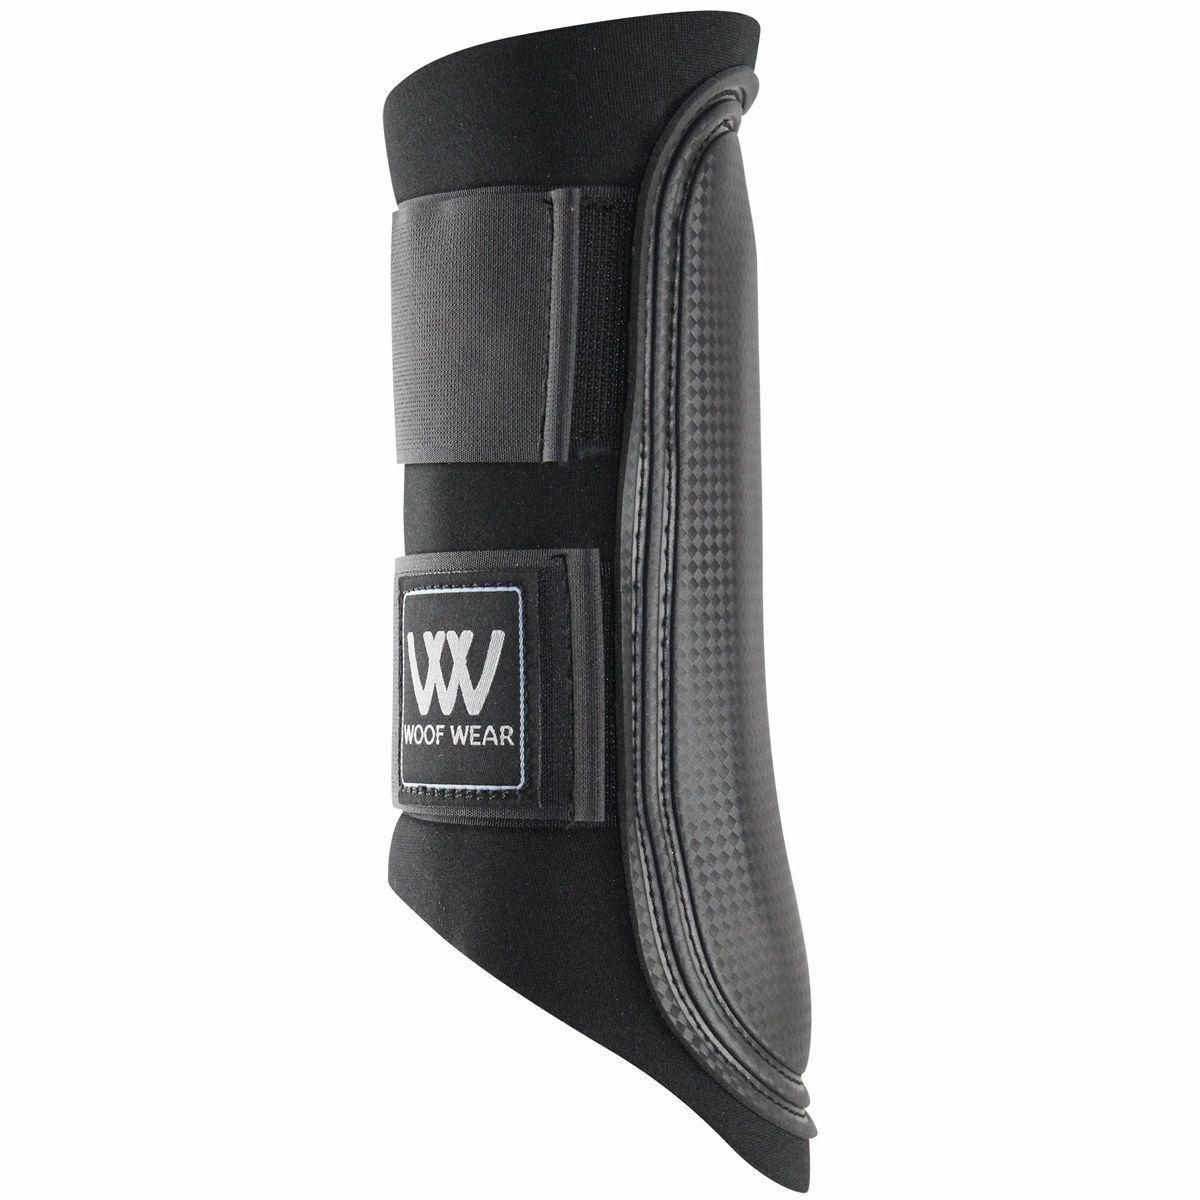 Woof Wear Club Horse Ride Equine Predect Flexible General Purpose Brushing Boot